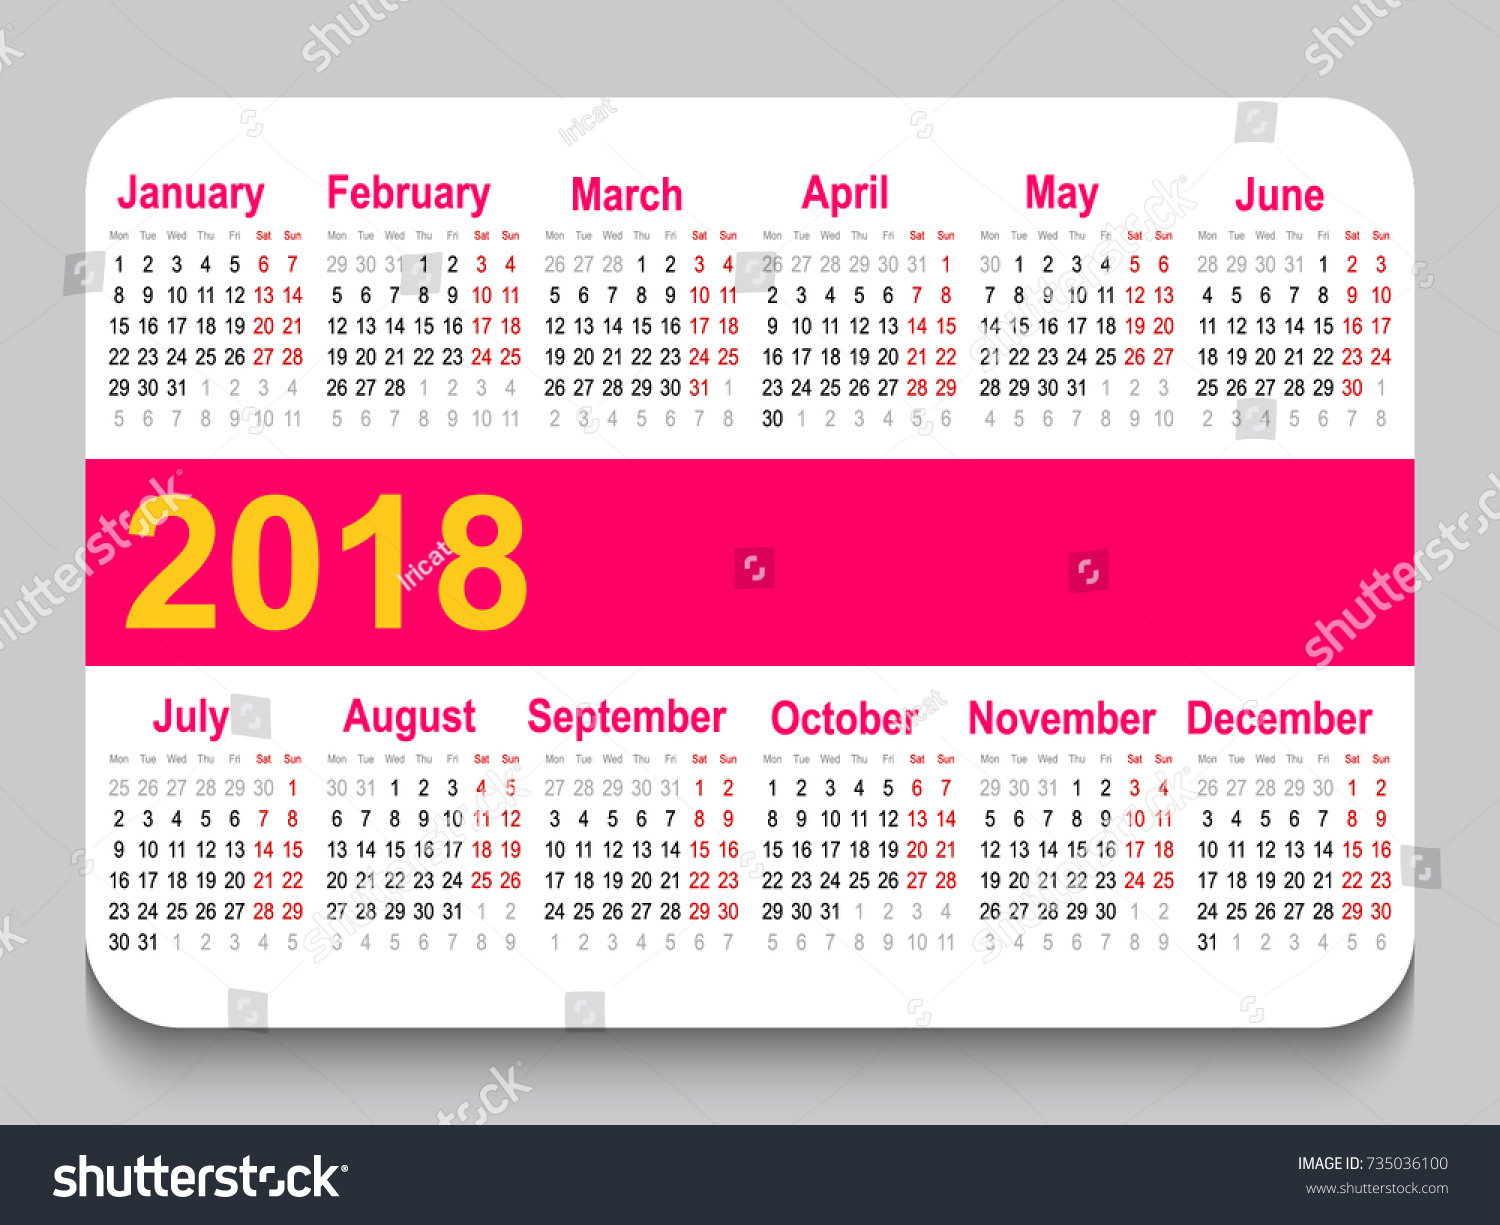 2018 pocket calendar template calendar grid horizontal orientation week starts on monday